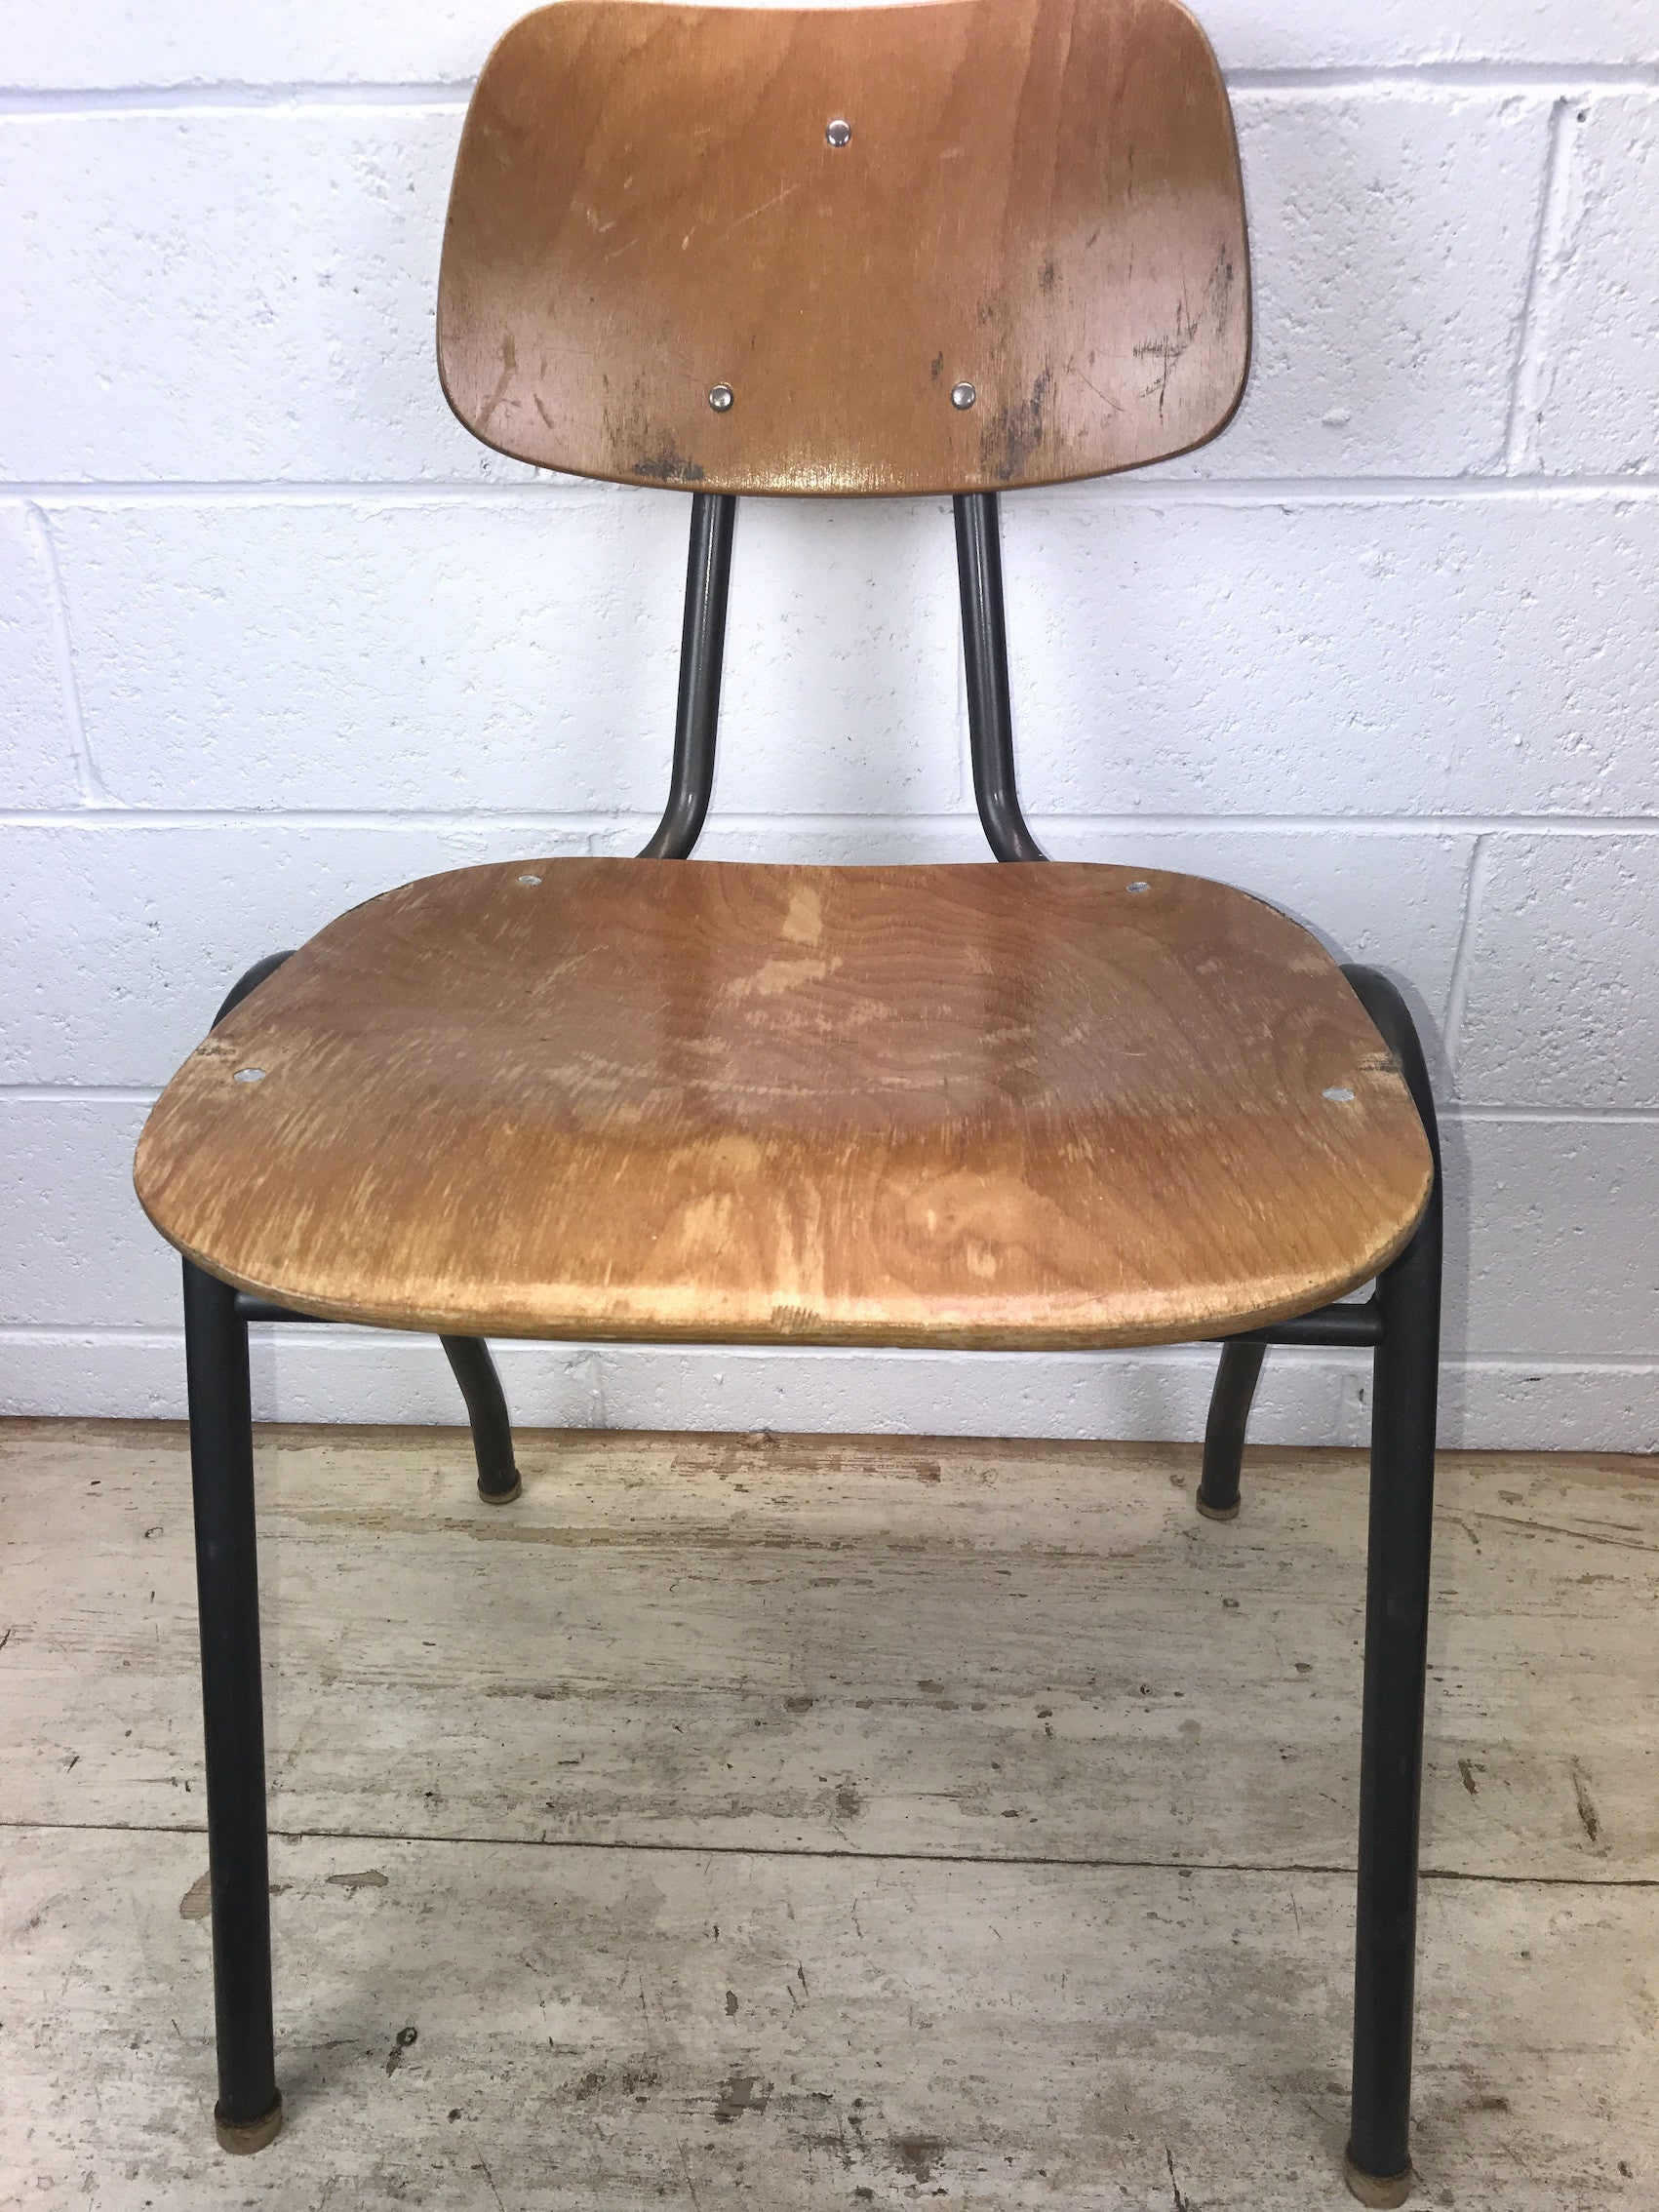 Vintage industrial Dutch school chairs  #1435